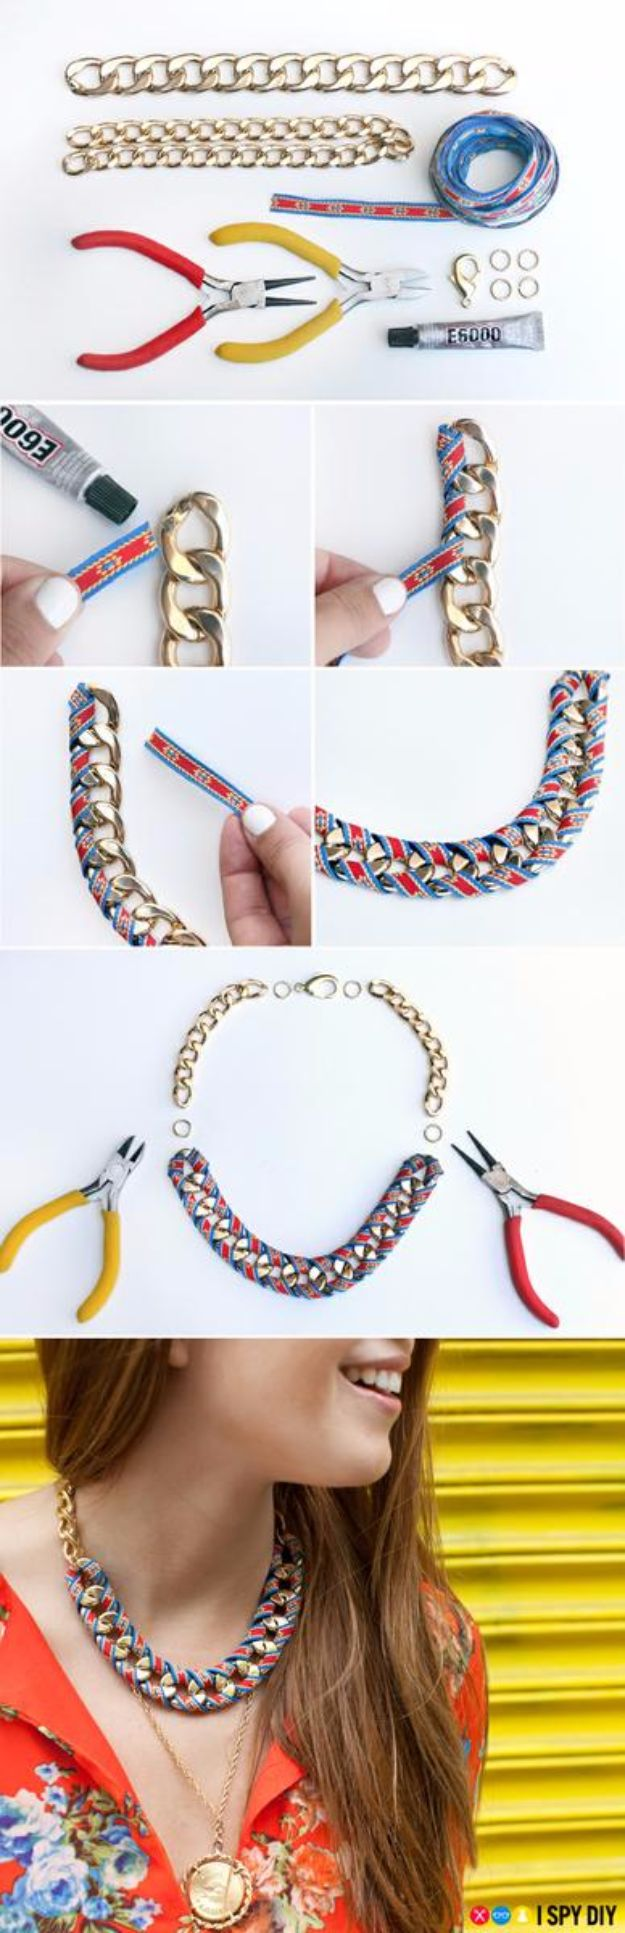 DIY Necklace Ideas - Ribbon Wrap Chain Necklace - Easy Handmade Necklaces with Step by Step Tutorials - Pendant, Beads, Statement, Choker, Layered Boho, Chain and Simple Looks - Creative Jewlery Making Ideas for Women and Teens, Girls - Crafts and Cool Fashion Ideas for Women, Teens and Teenagers http://diyjoy.com/diy-necklaces